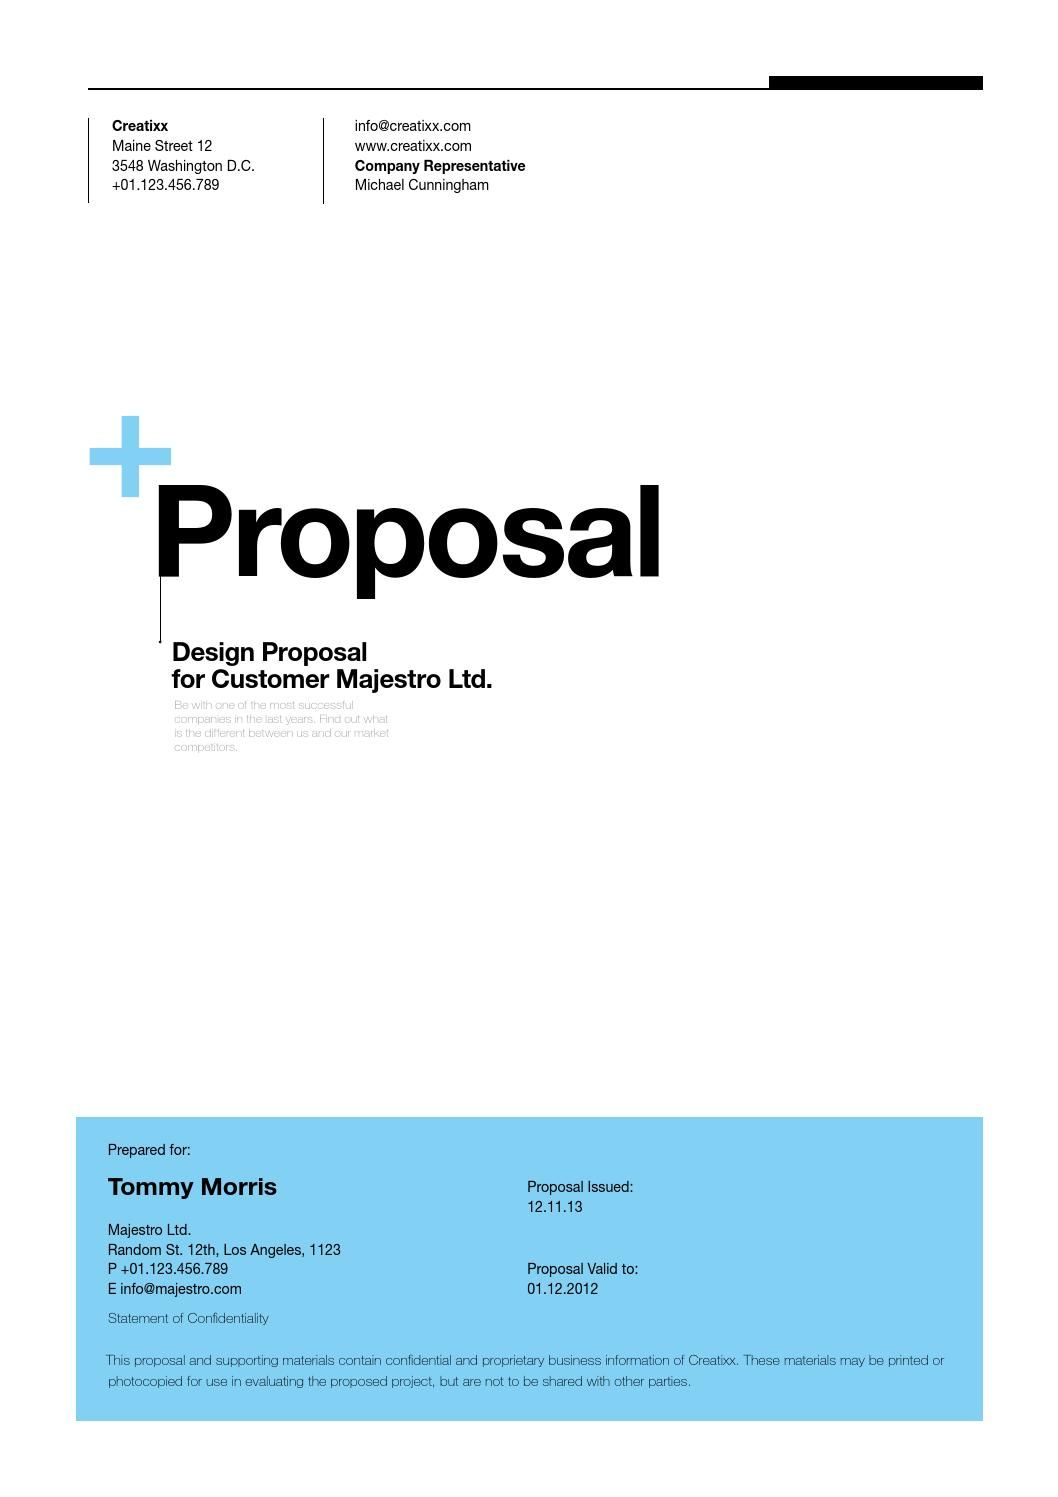 suisse design proposal template